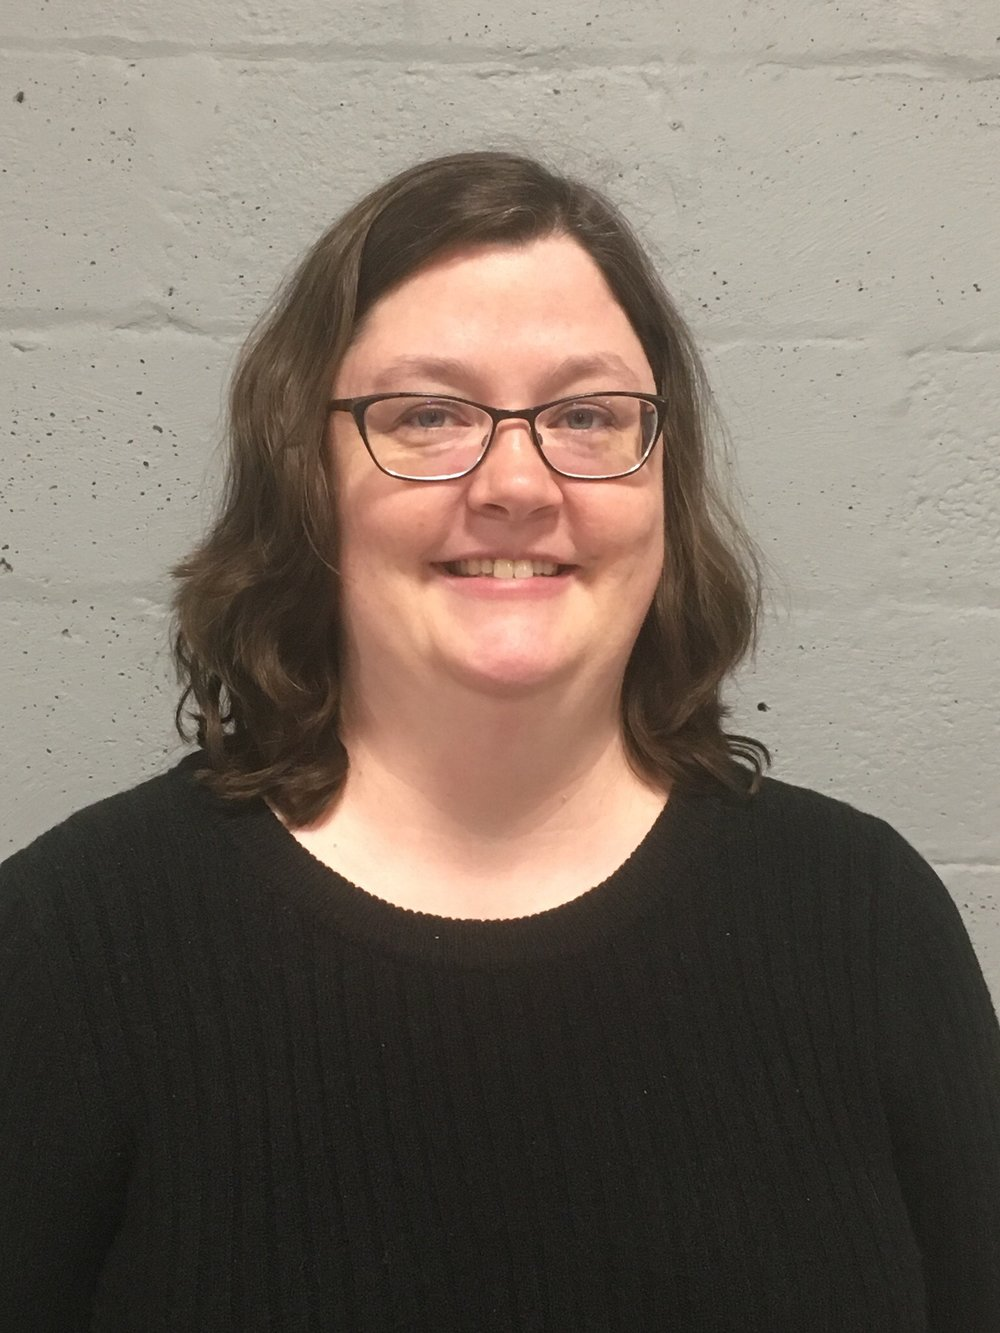 Kerry Morrison (chorus) - Kerry is a multi-woodwind player active in the Knoxville Community Band and has played in the orchestra pit for several area musicals. She has recently joined Katy Free and The New Fashions on alto sax and clarinet. She is excited to sing and play in Jesus Christ Superstar!